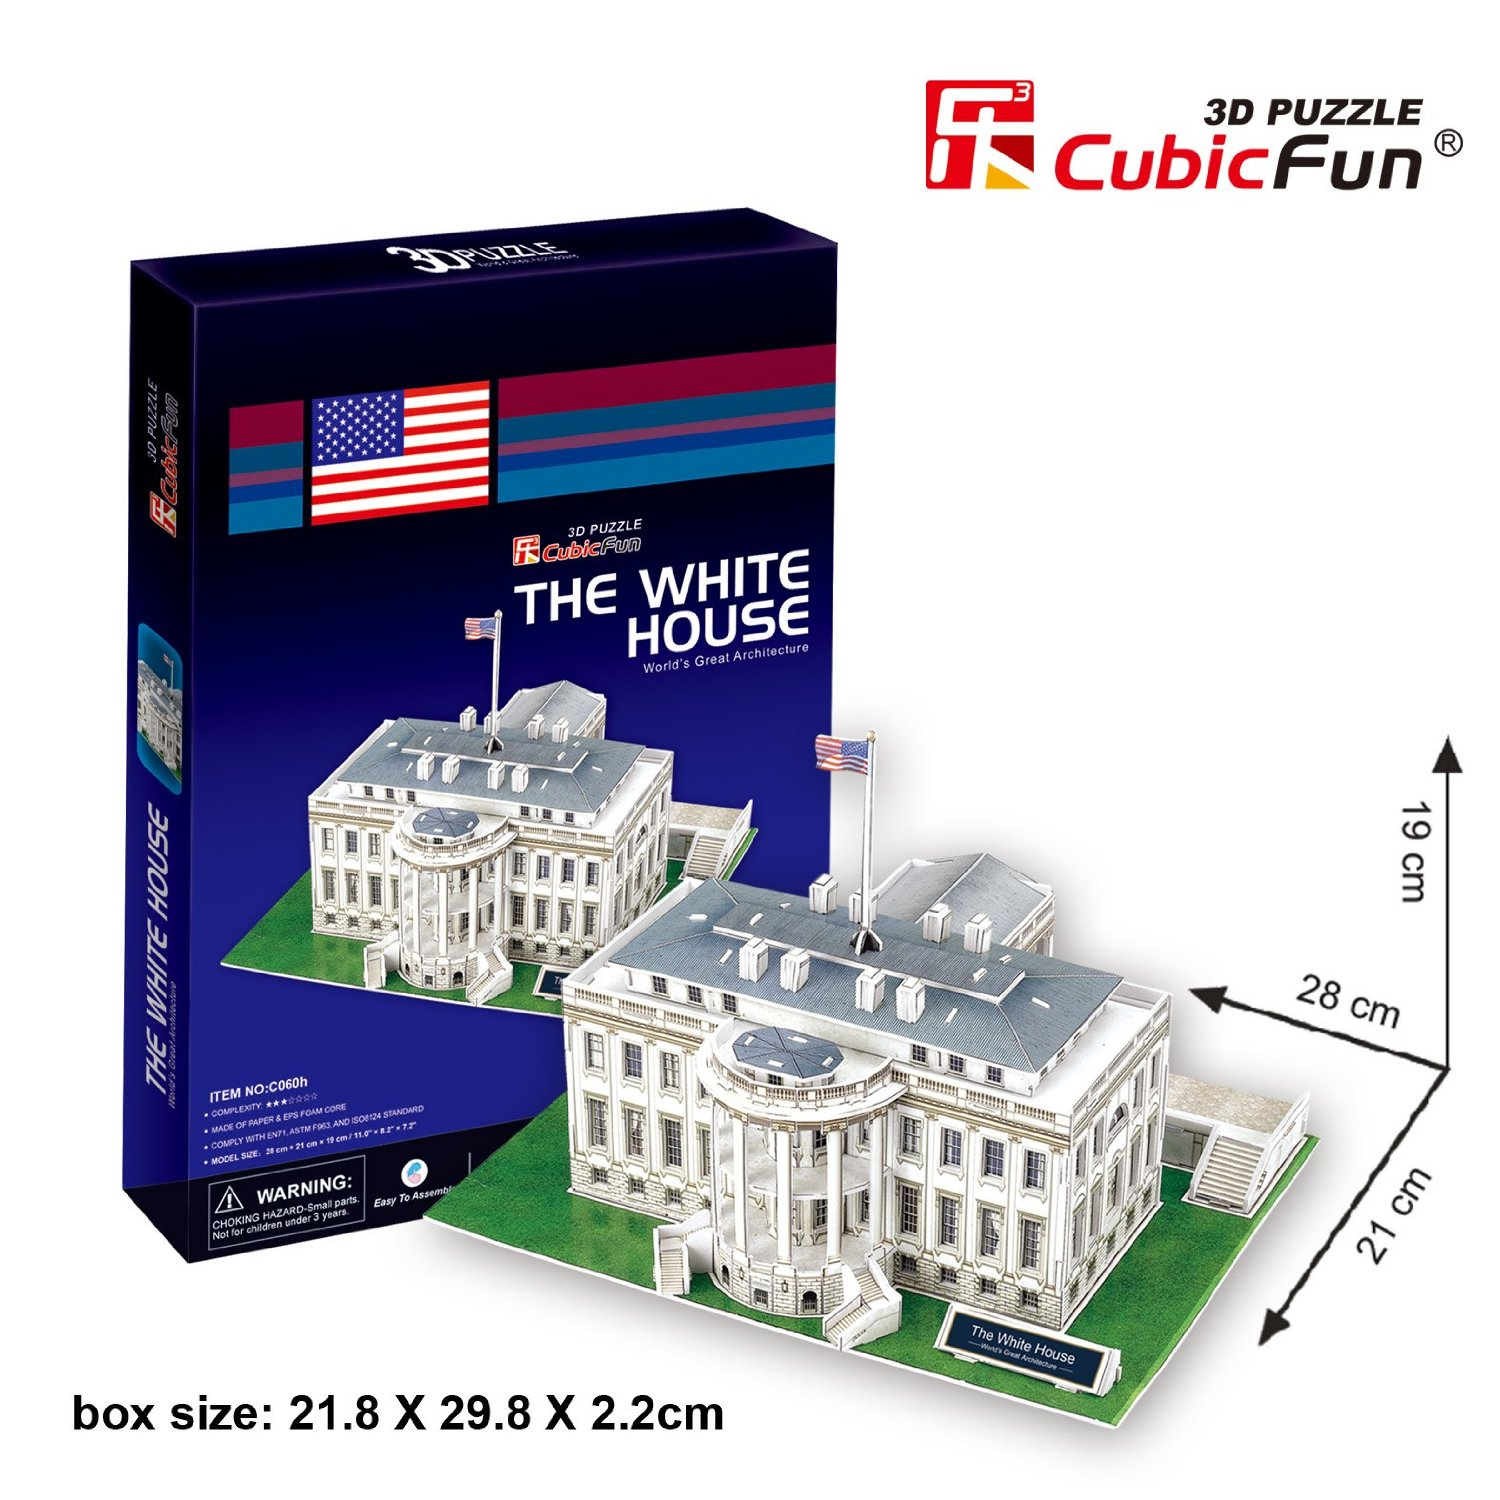 puzzle 3d washington weisses haus 65 teile cubic fun puzzle online kaufen. Black Bedroom Furniture Sets. Home Design Ideas